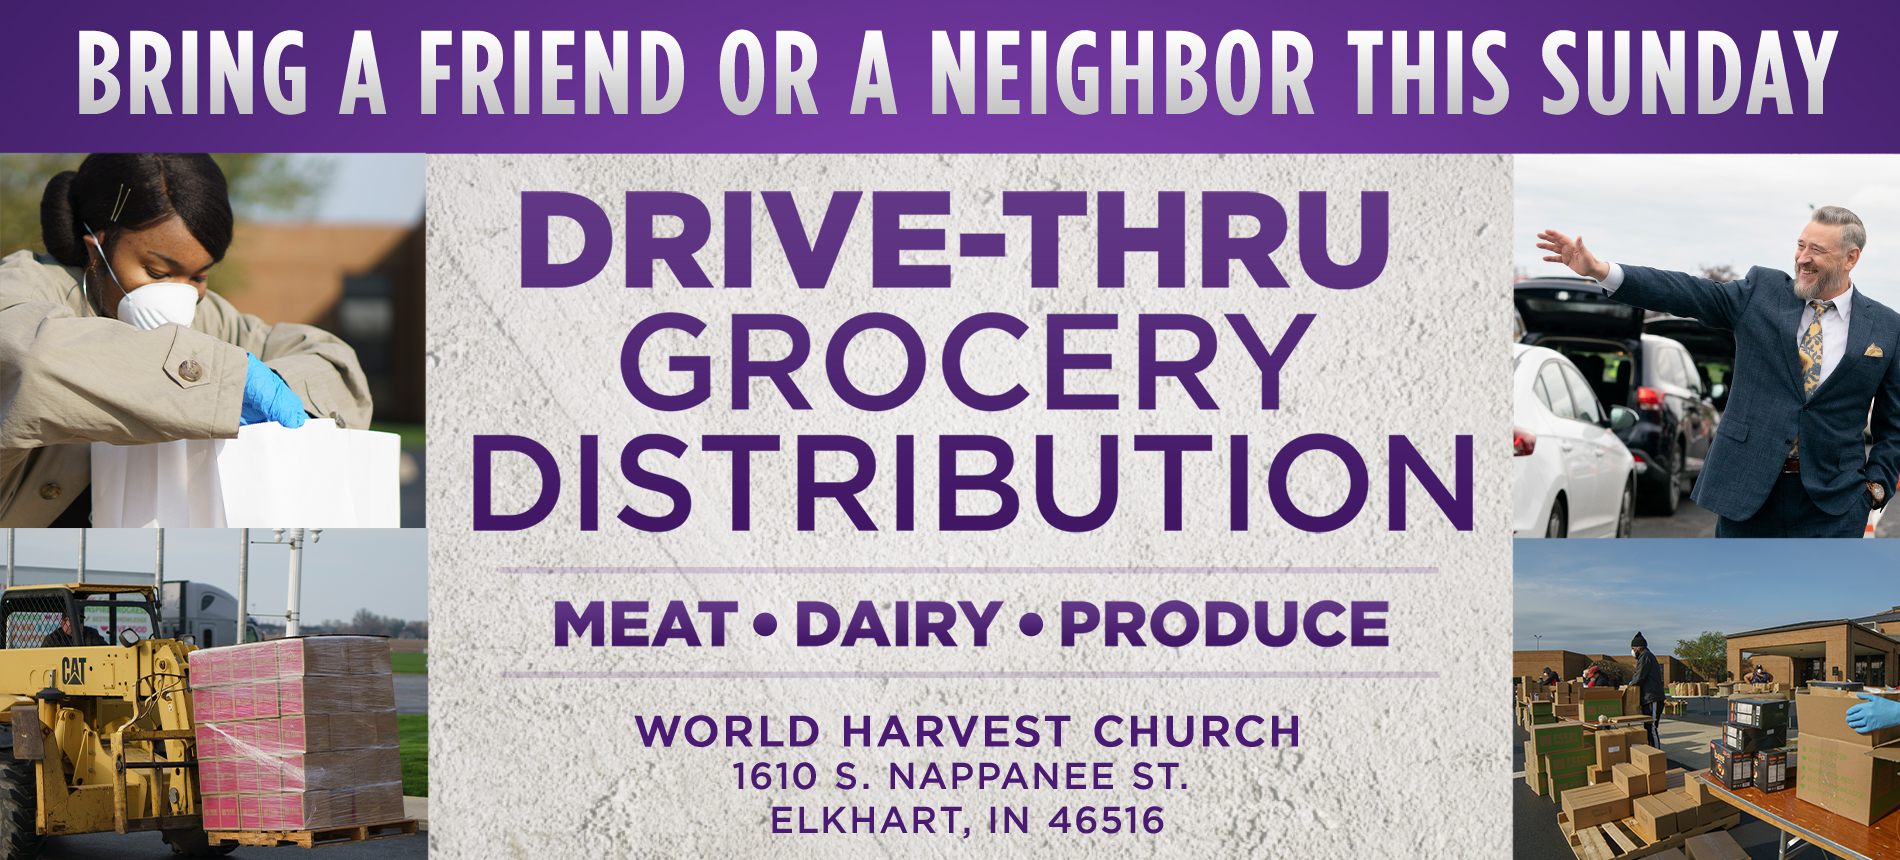 Bring a Friend or a Neighbor This Sunday Drive-Thru Grocery Distribution Meat, Dairy, Produce. World Harvest Church 4595 Gender Road Canal Winchester, OH 43110